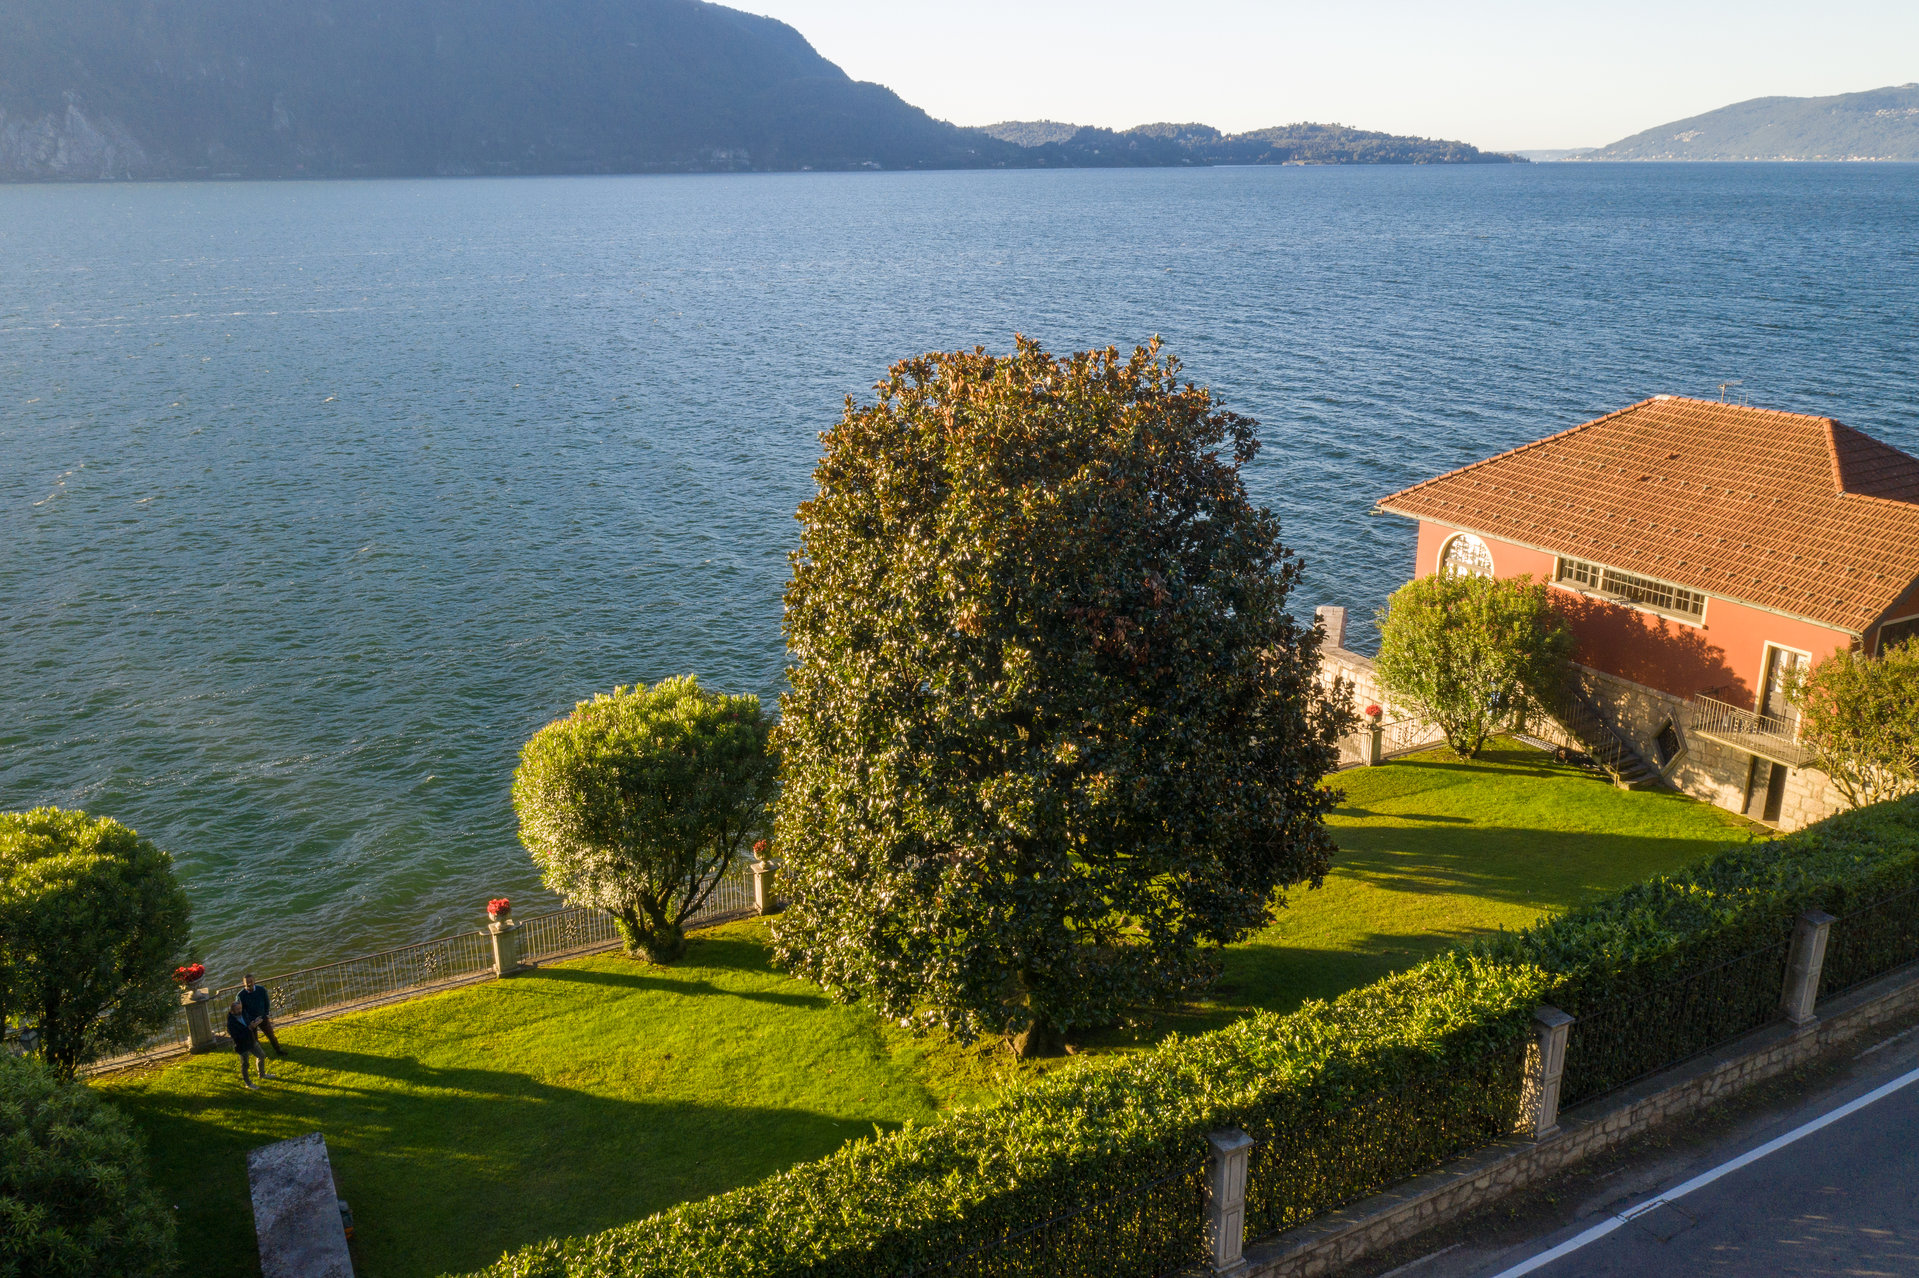 Period villa pieds dans l'eau for sale in Ghiffa - panoramic view